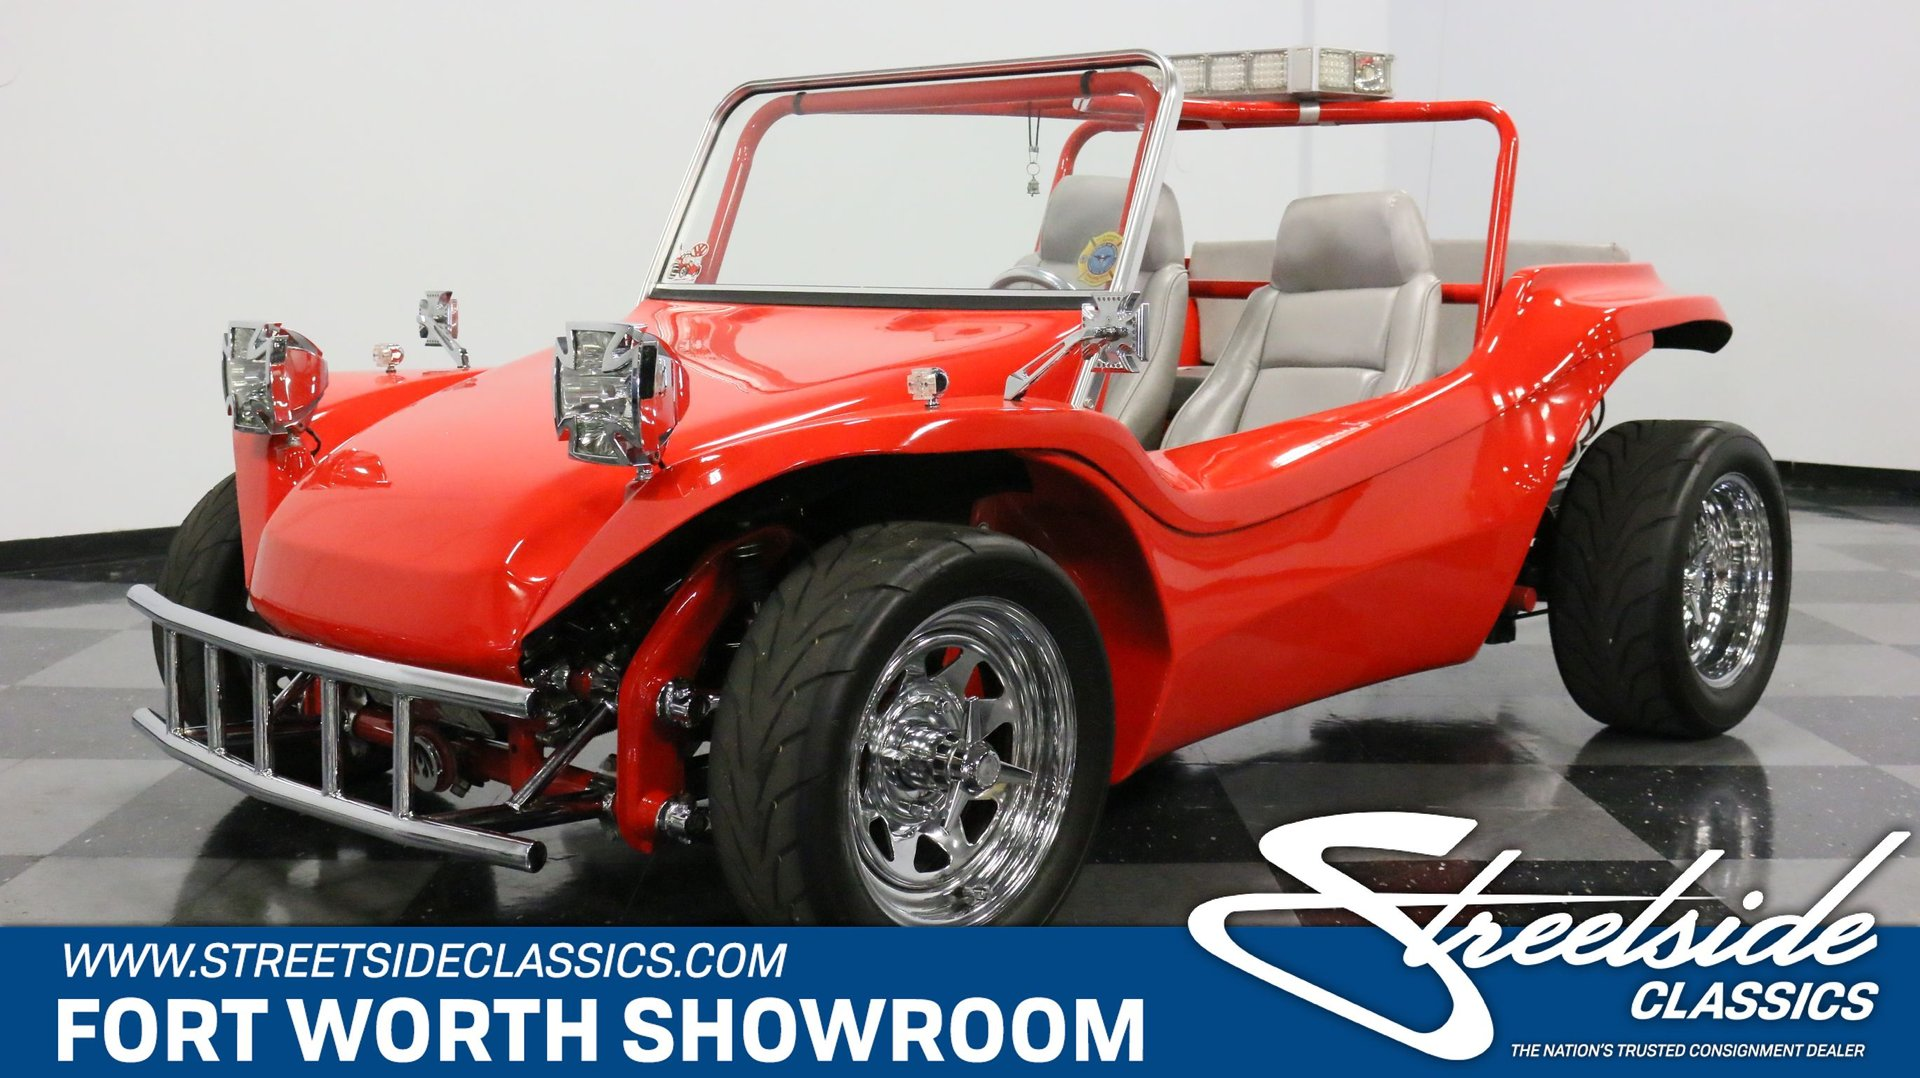 1969 Volkswagen Dune Buggy Classic Cars For Sale Streetside Classics The Nation S 1 Consignment Dealer